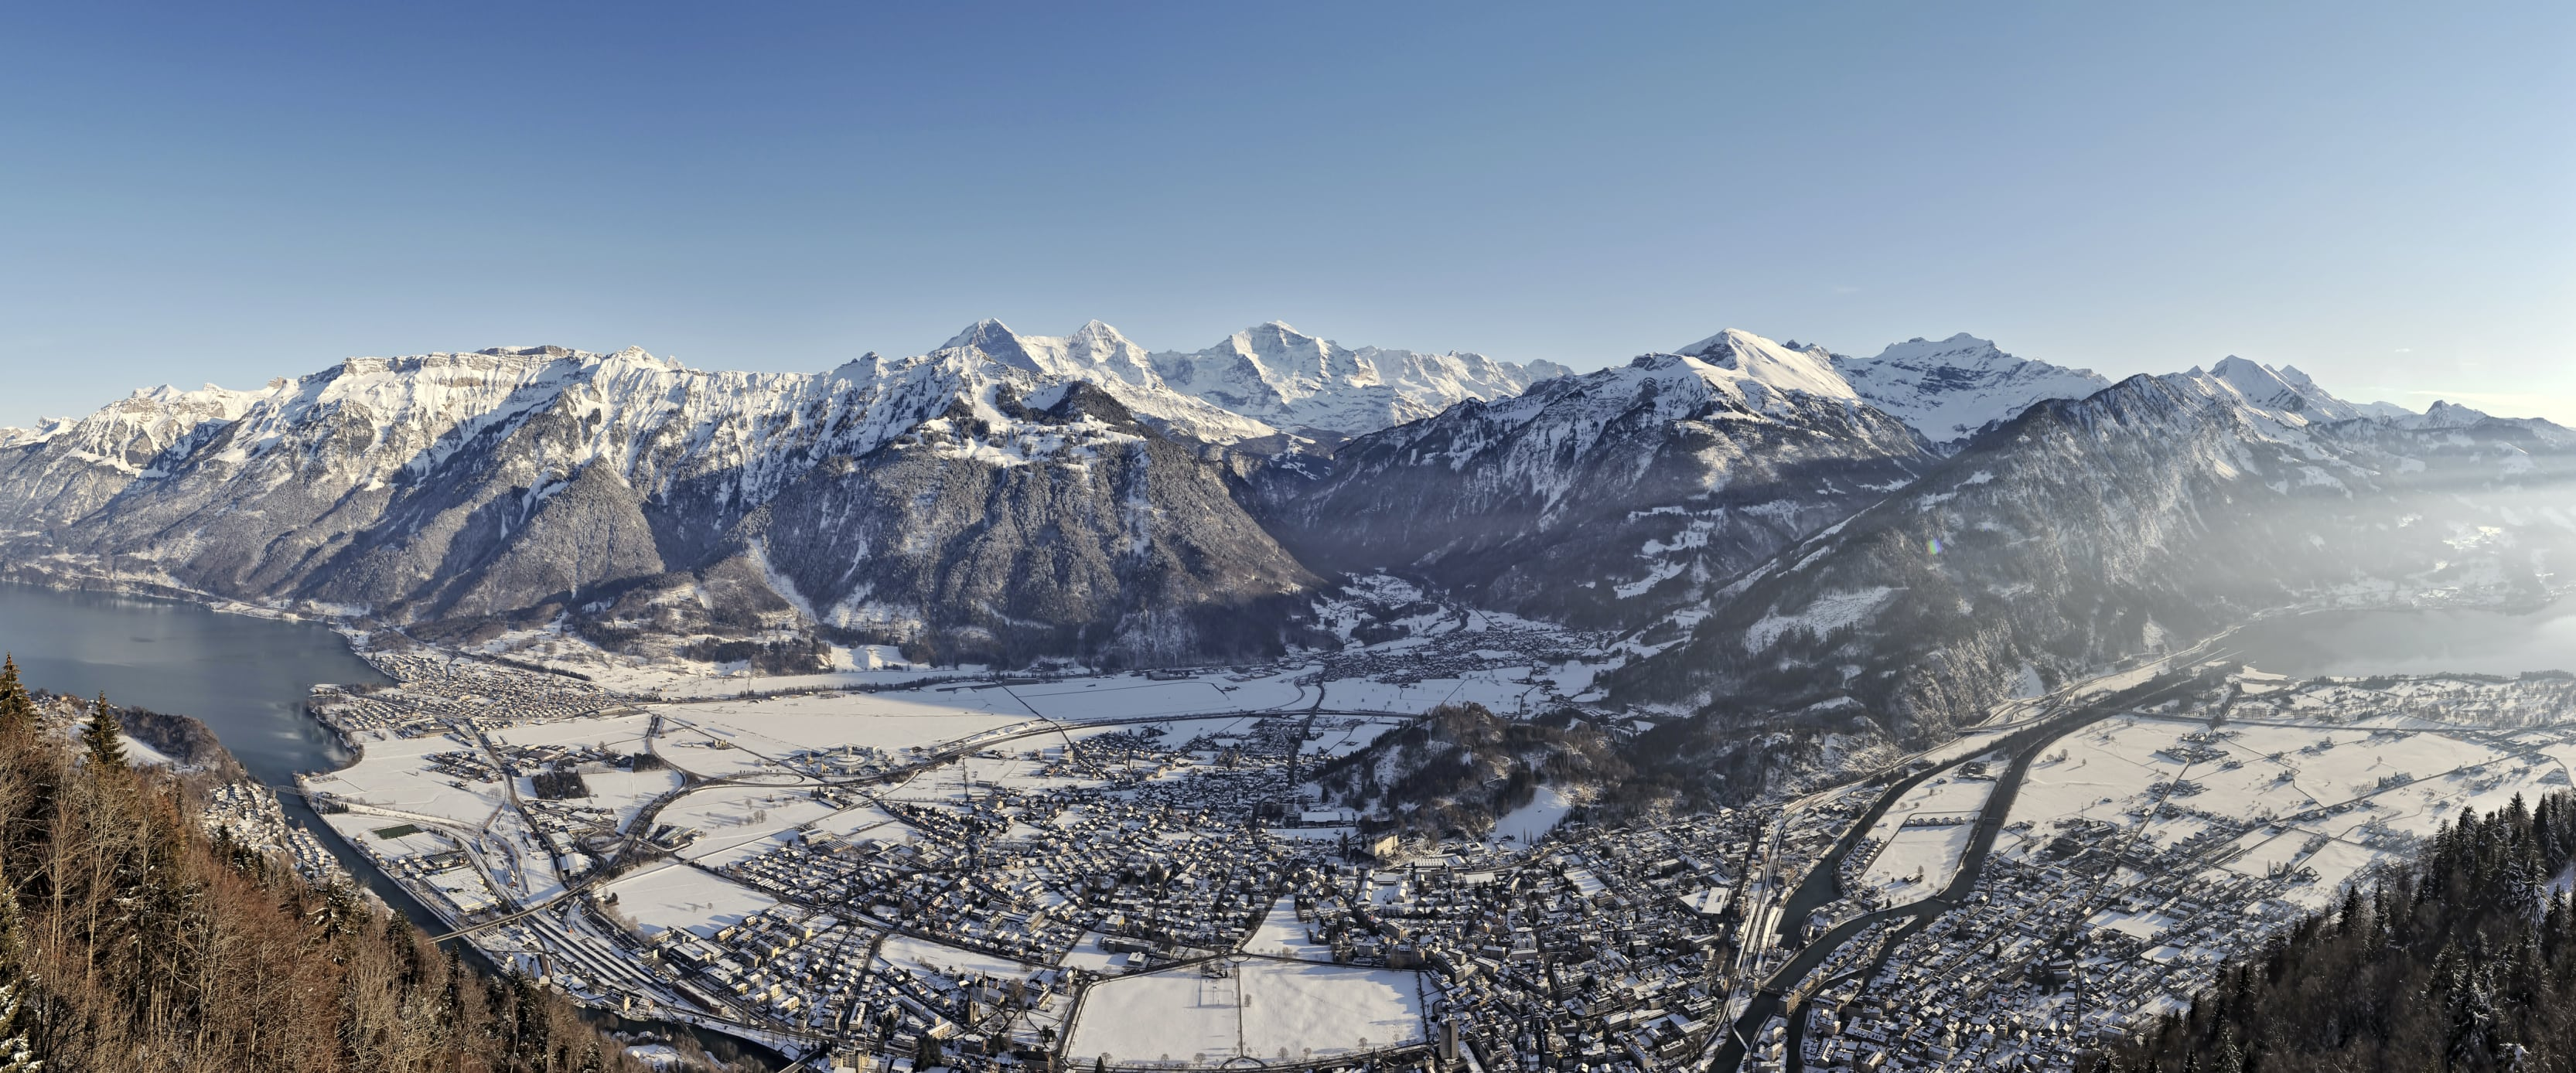 Boedeli Interlaken Winter Panorama Brienzersee